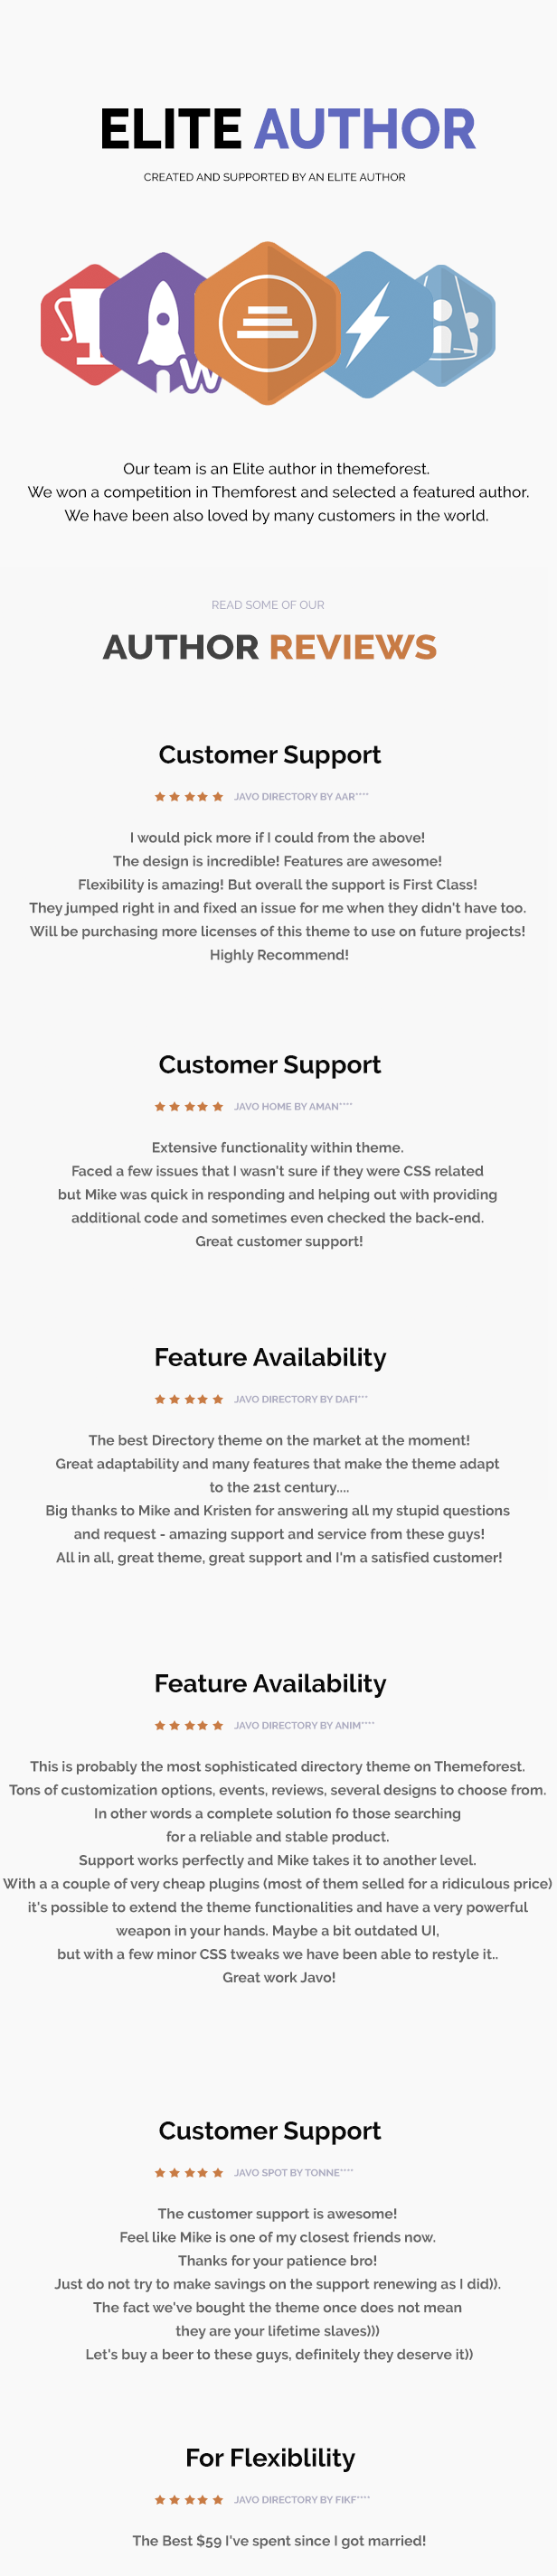 Lynk - Social Networking and Community WordPress Theme - 12